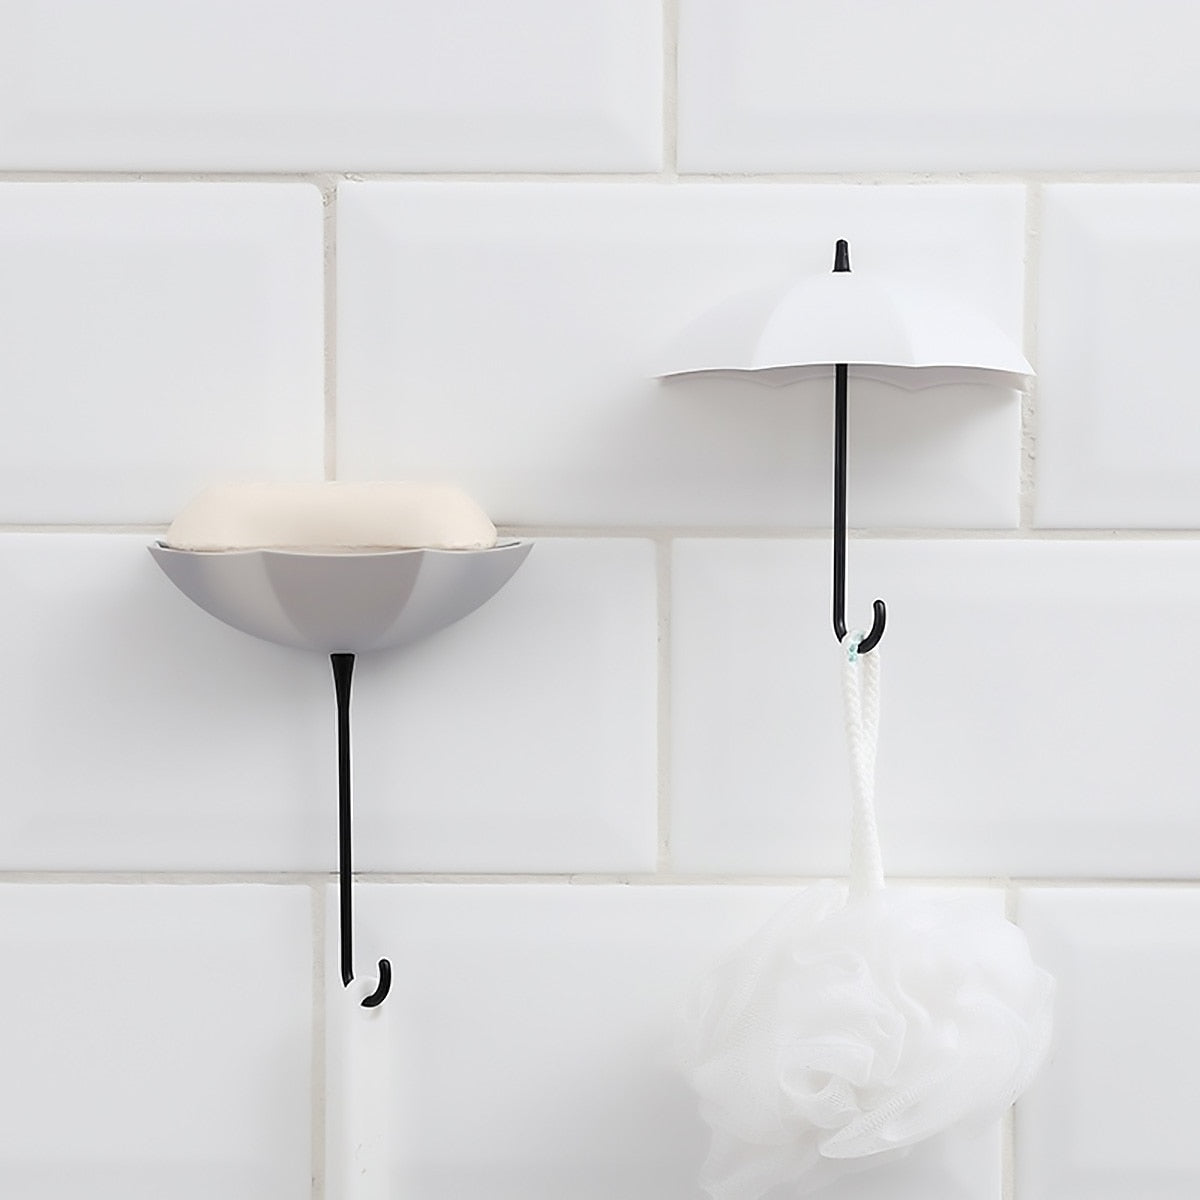 Decorative Umbrella Wall Hooks (3Pcs)